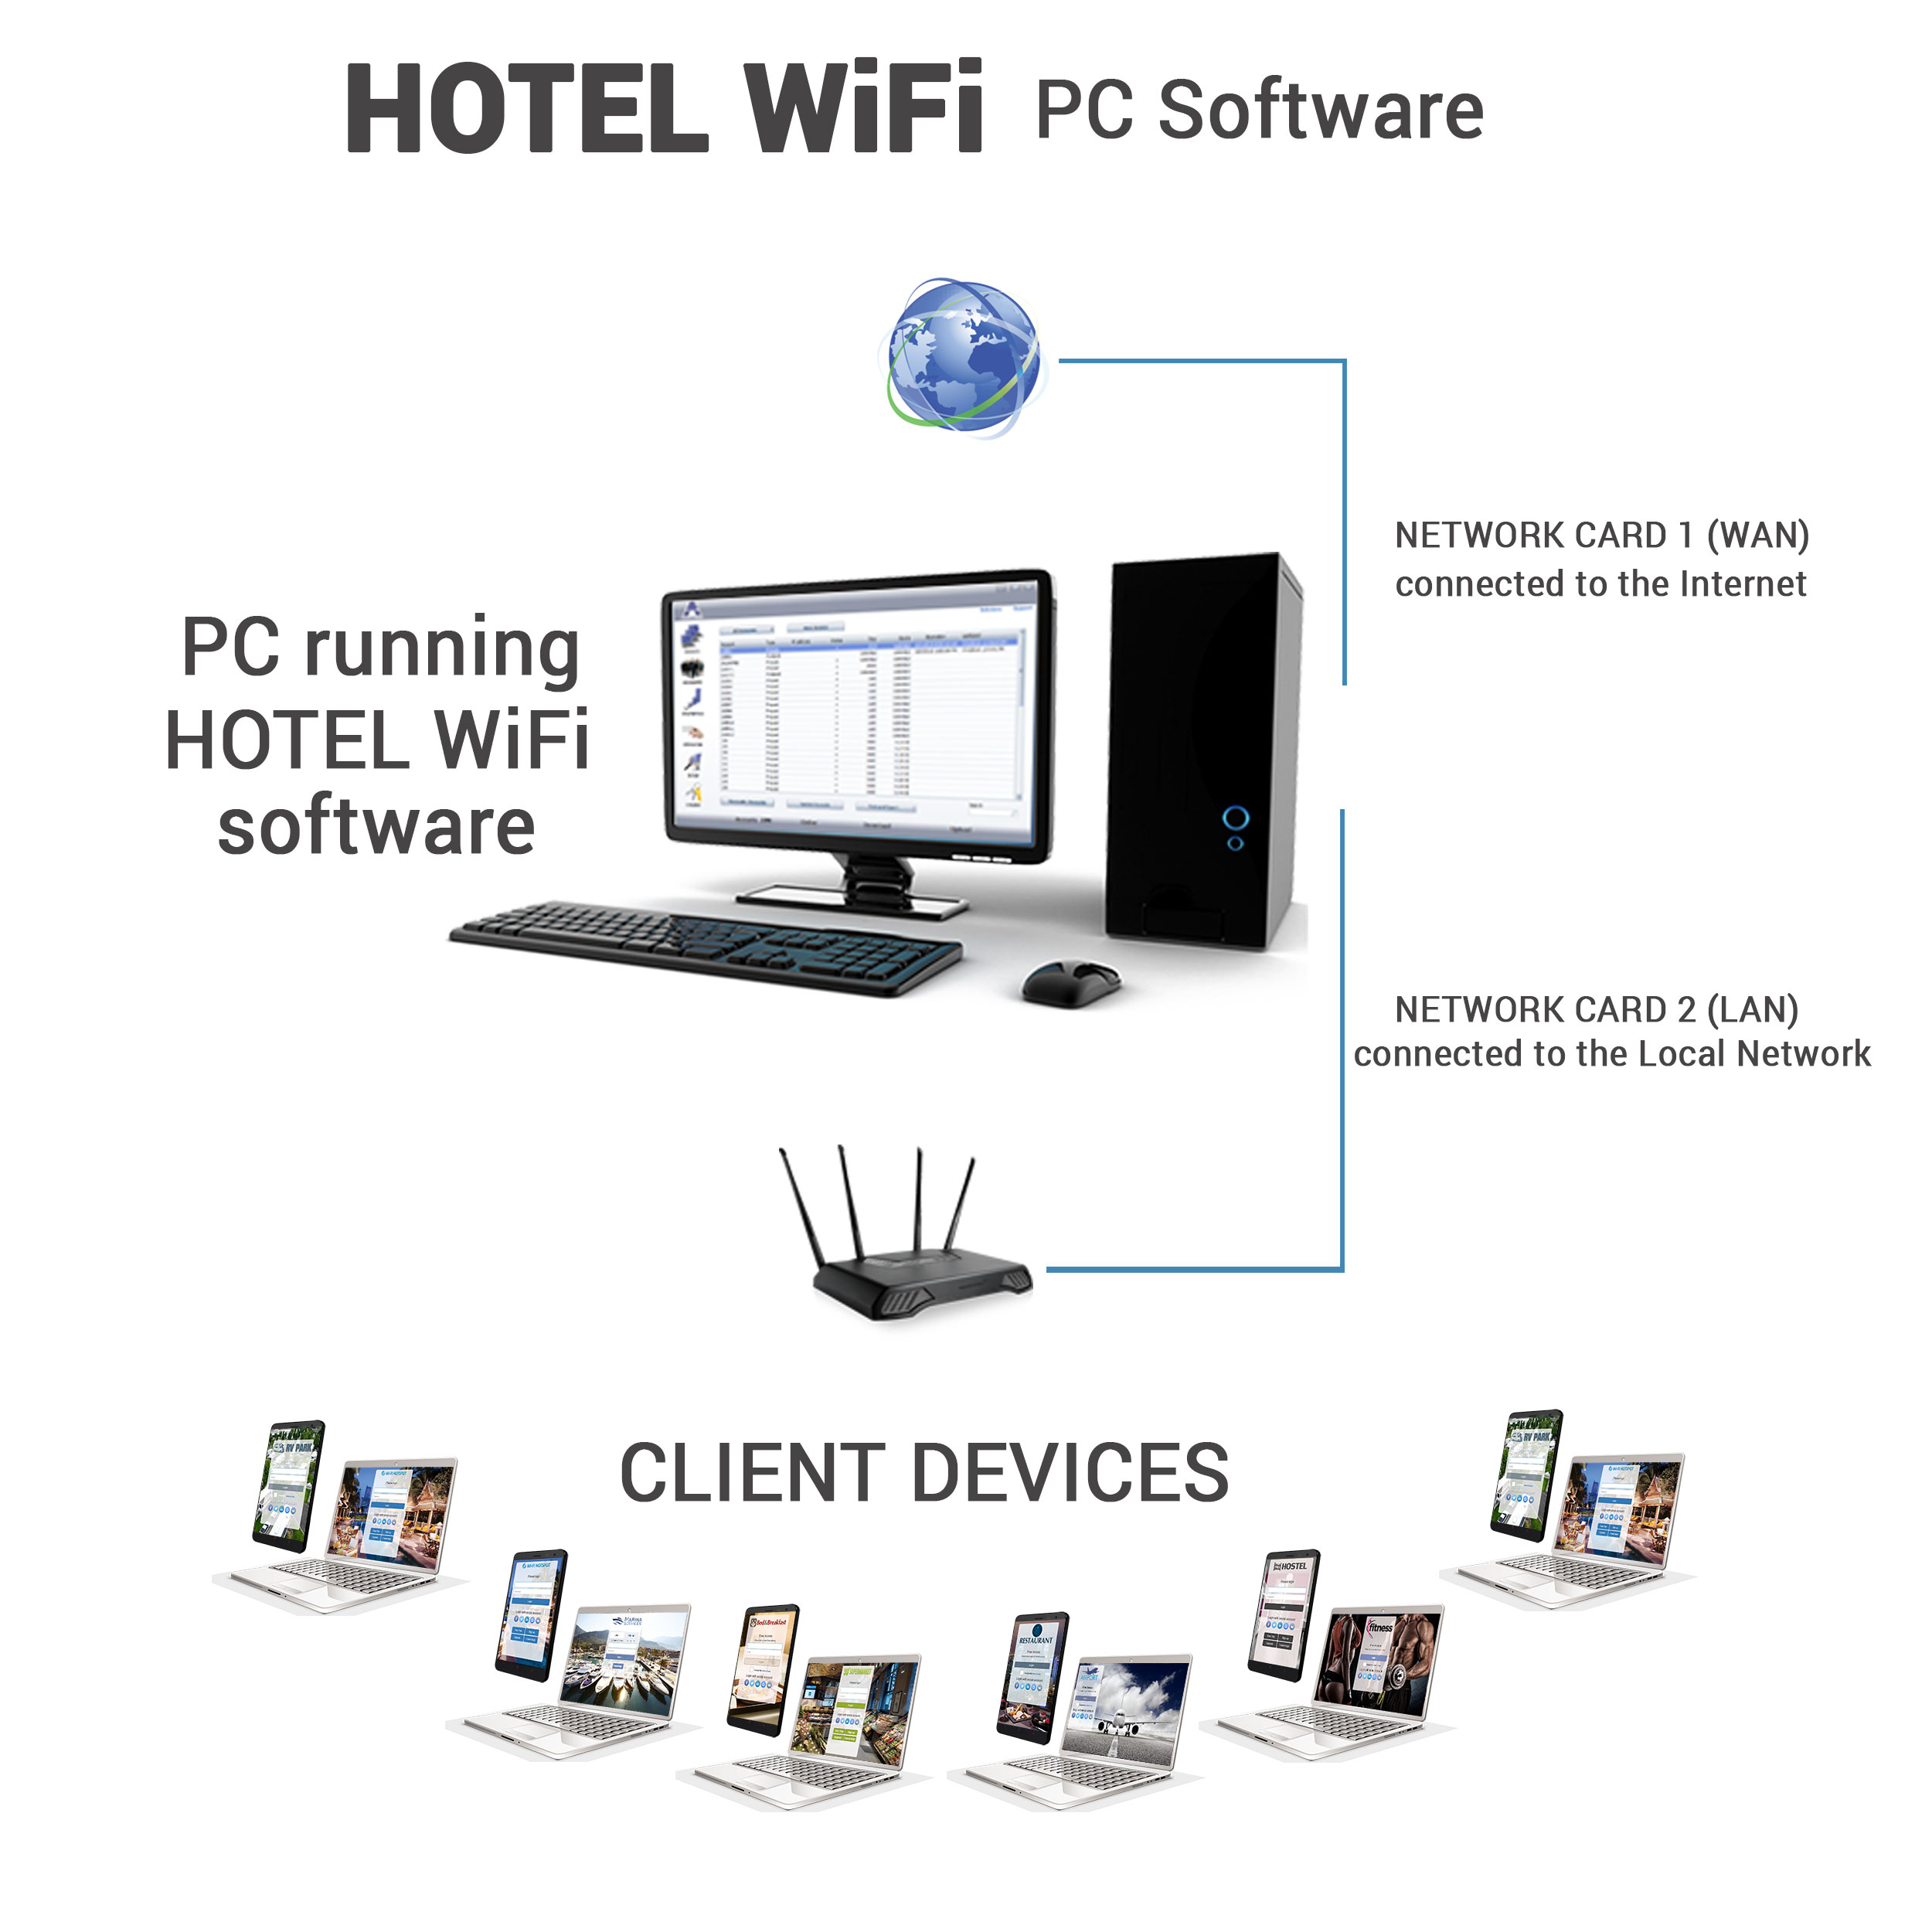 Hotel WiFi PC software